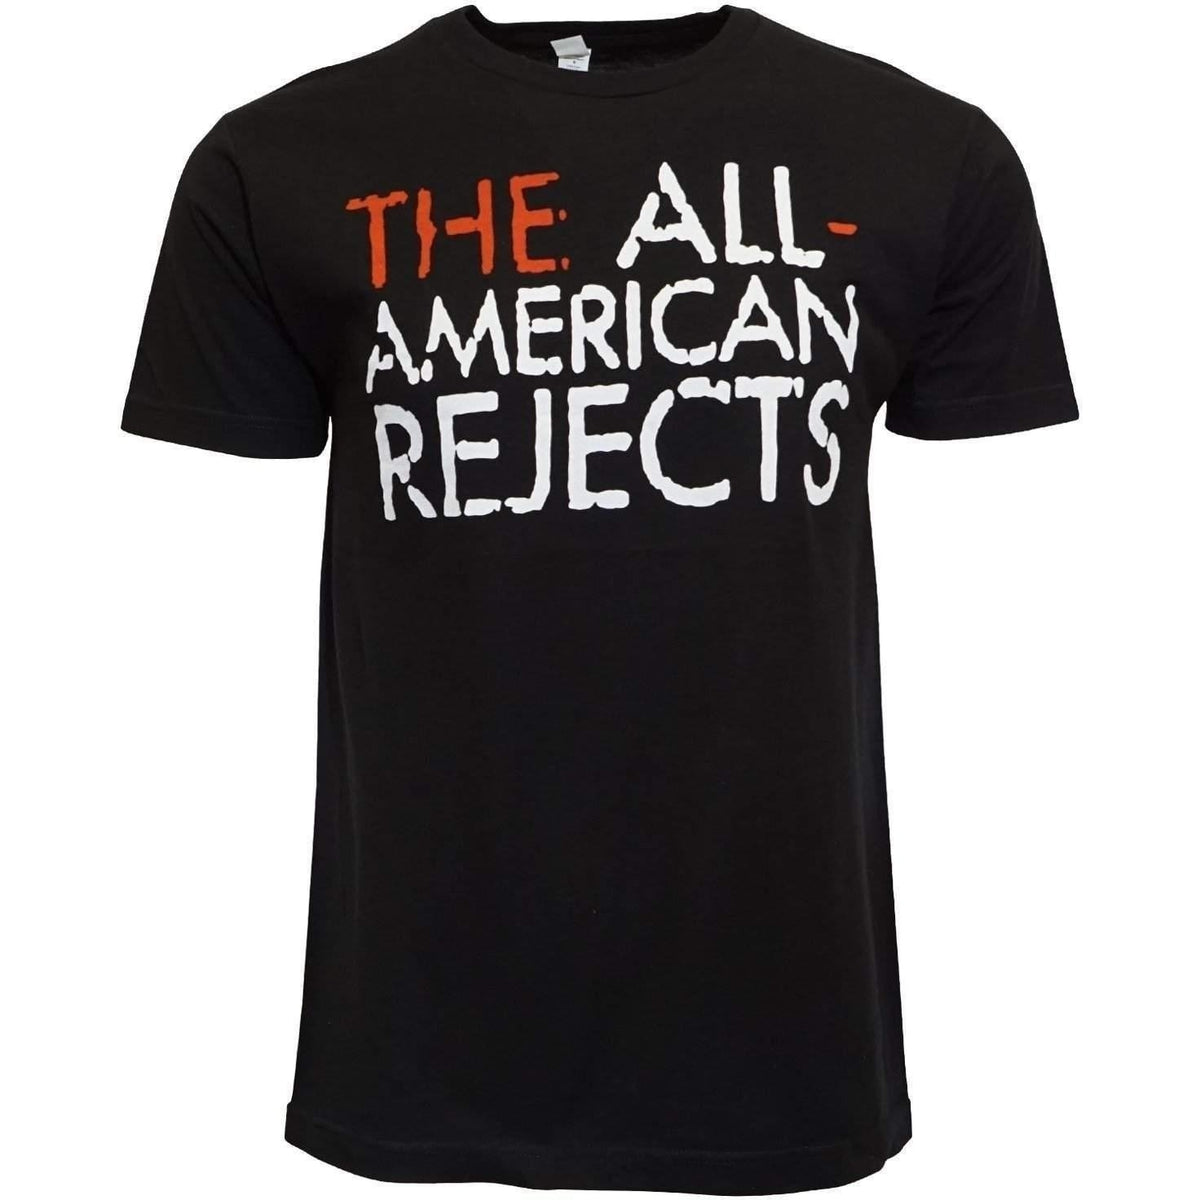 THE ALL AMERICAN REJECTS TEE